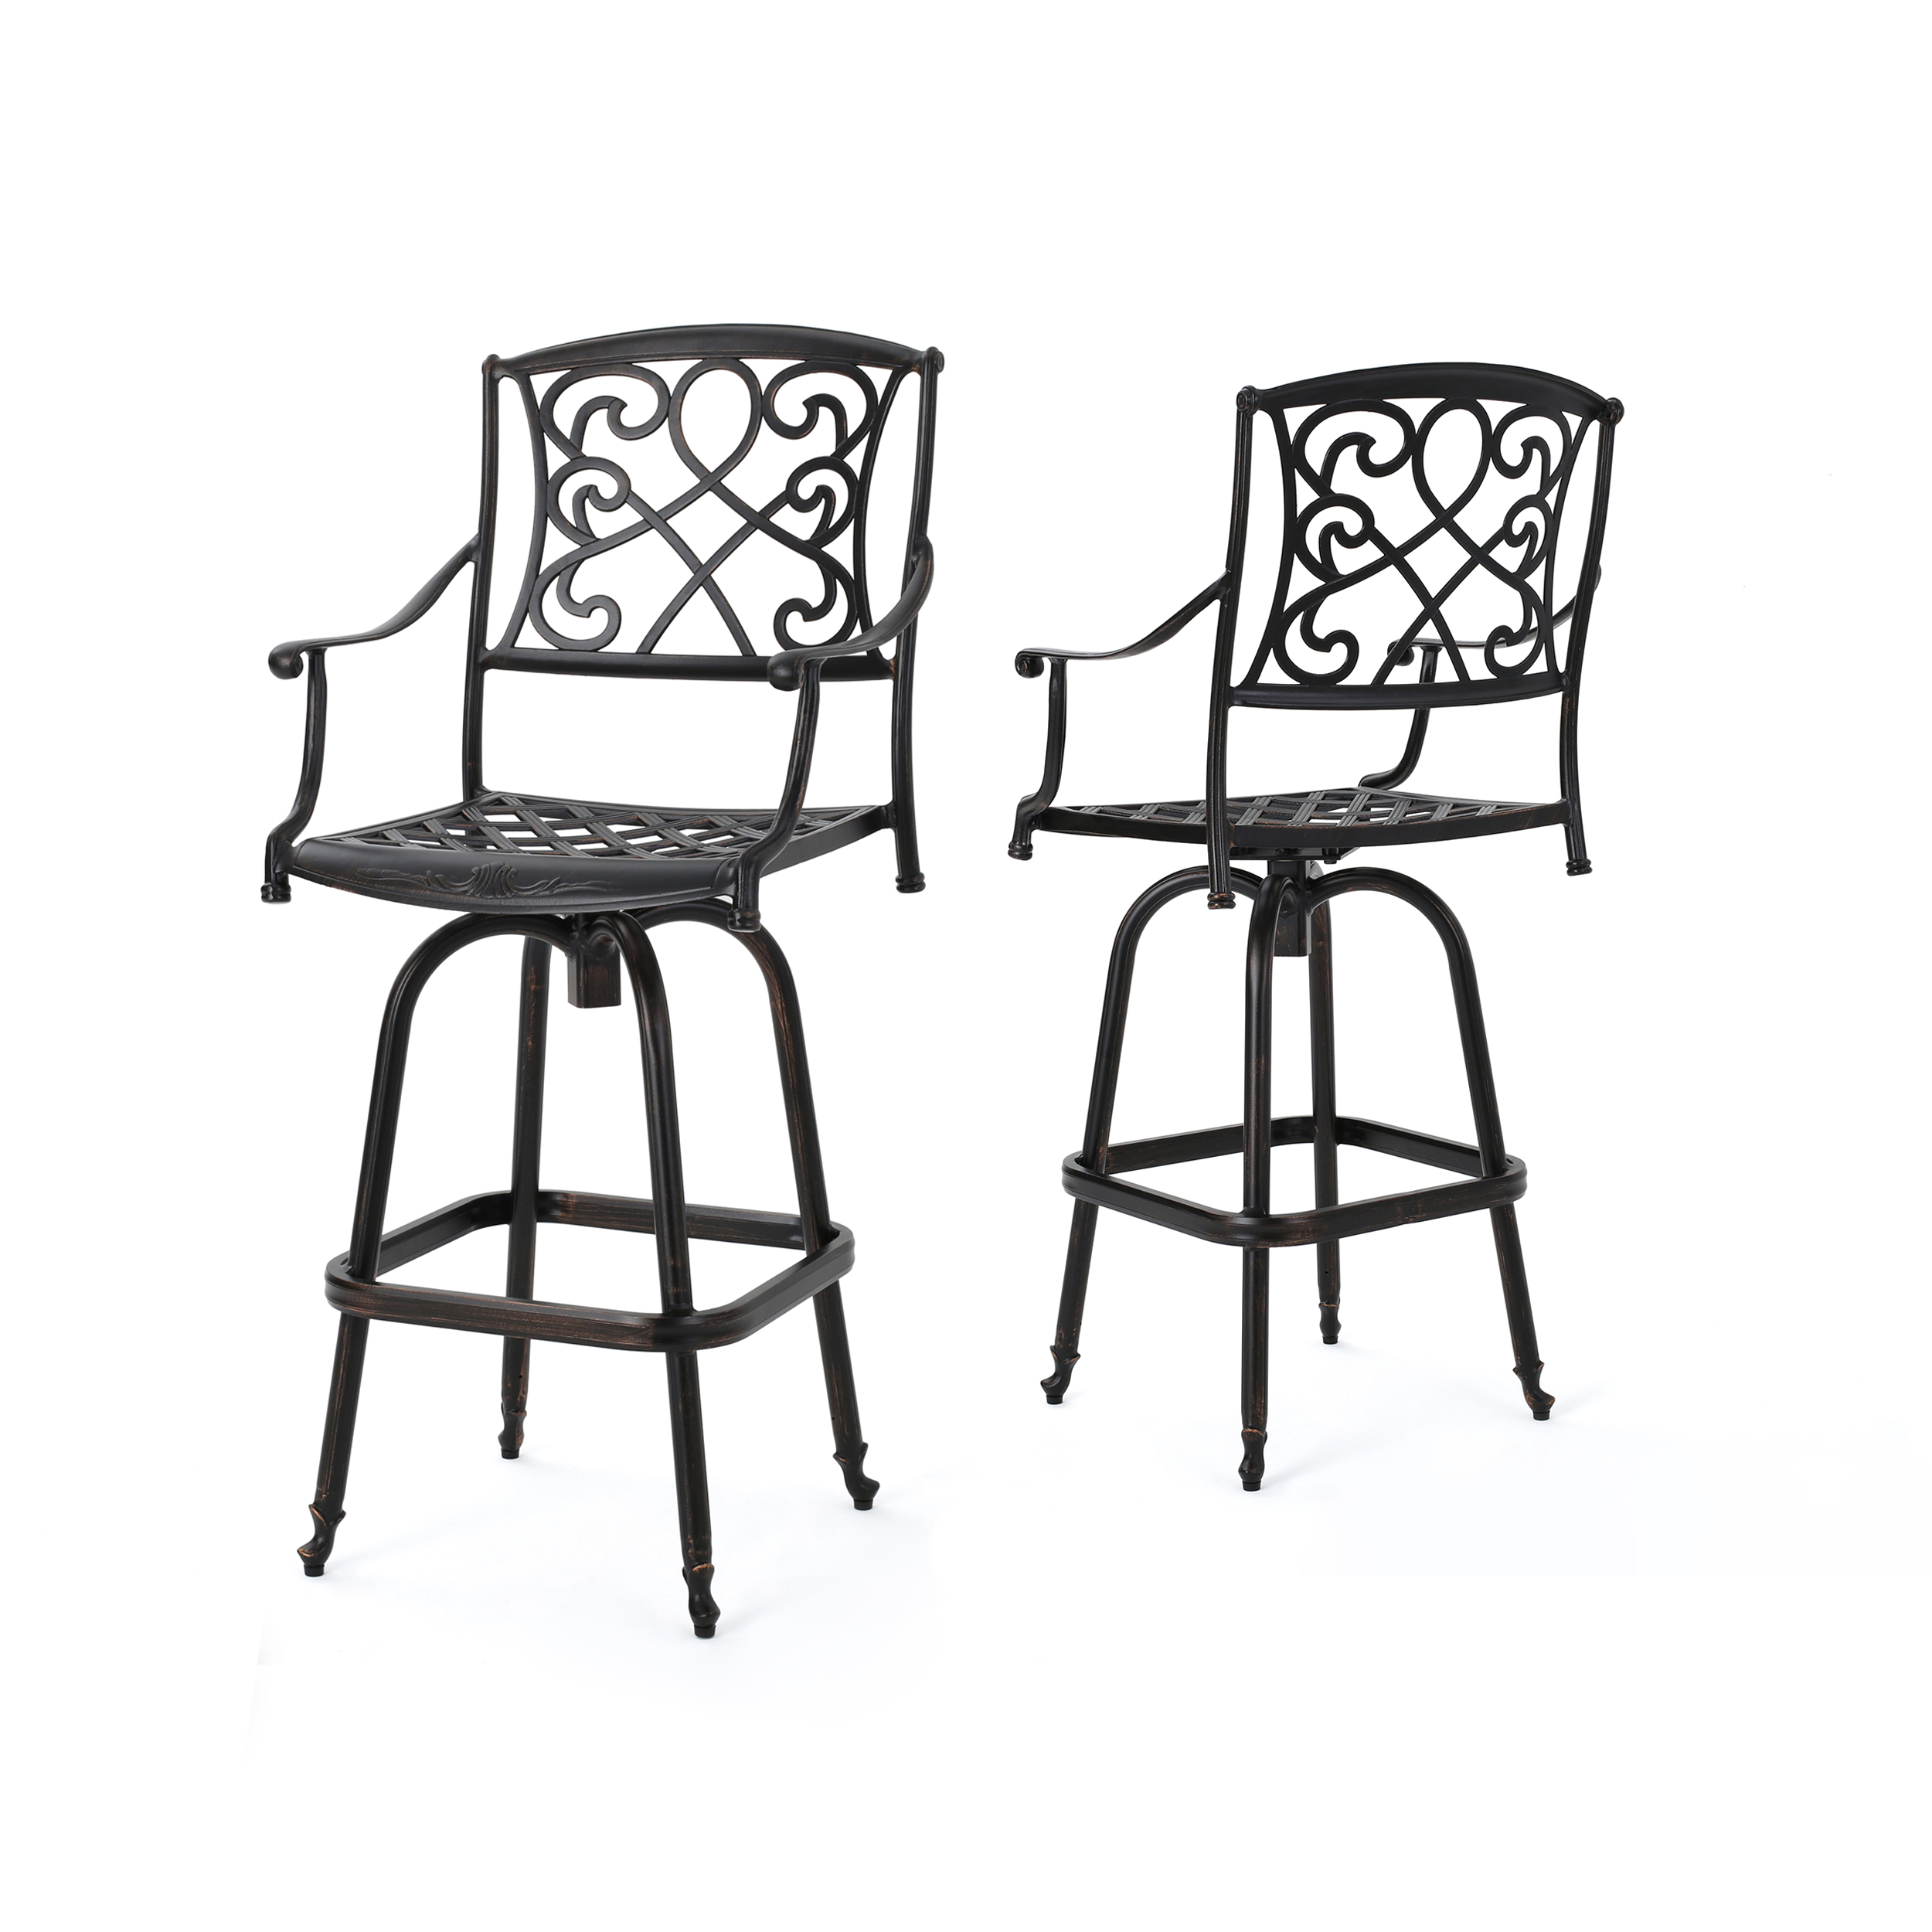 Cambria Bar Stools (Set of 2)